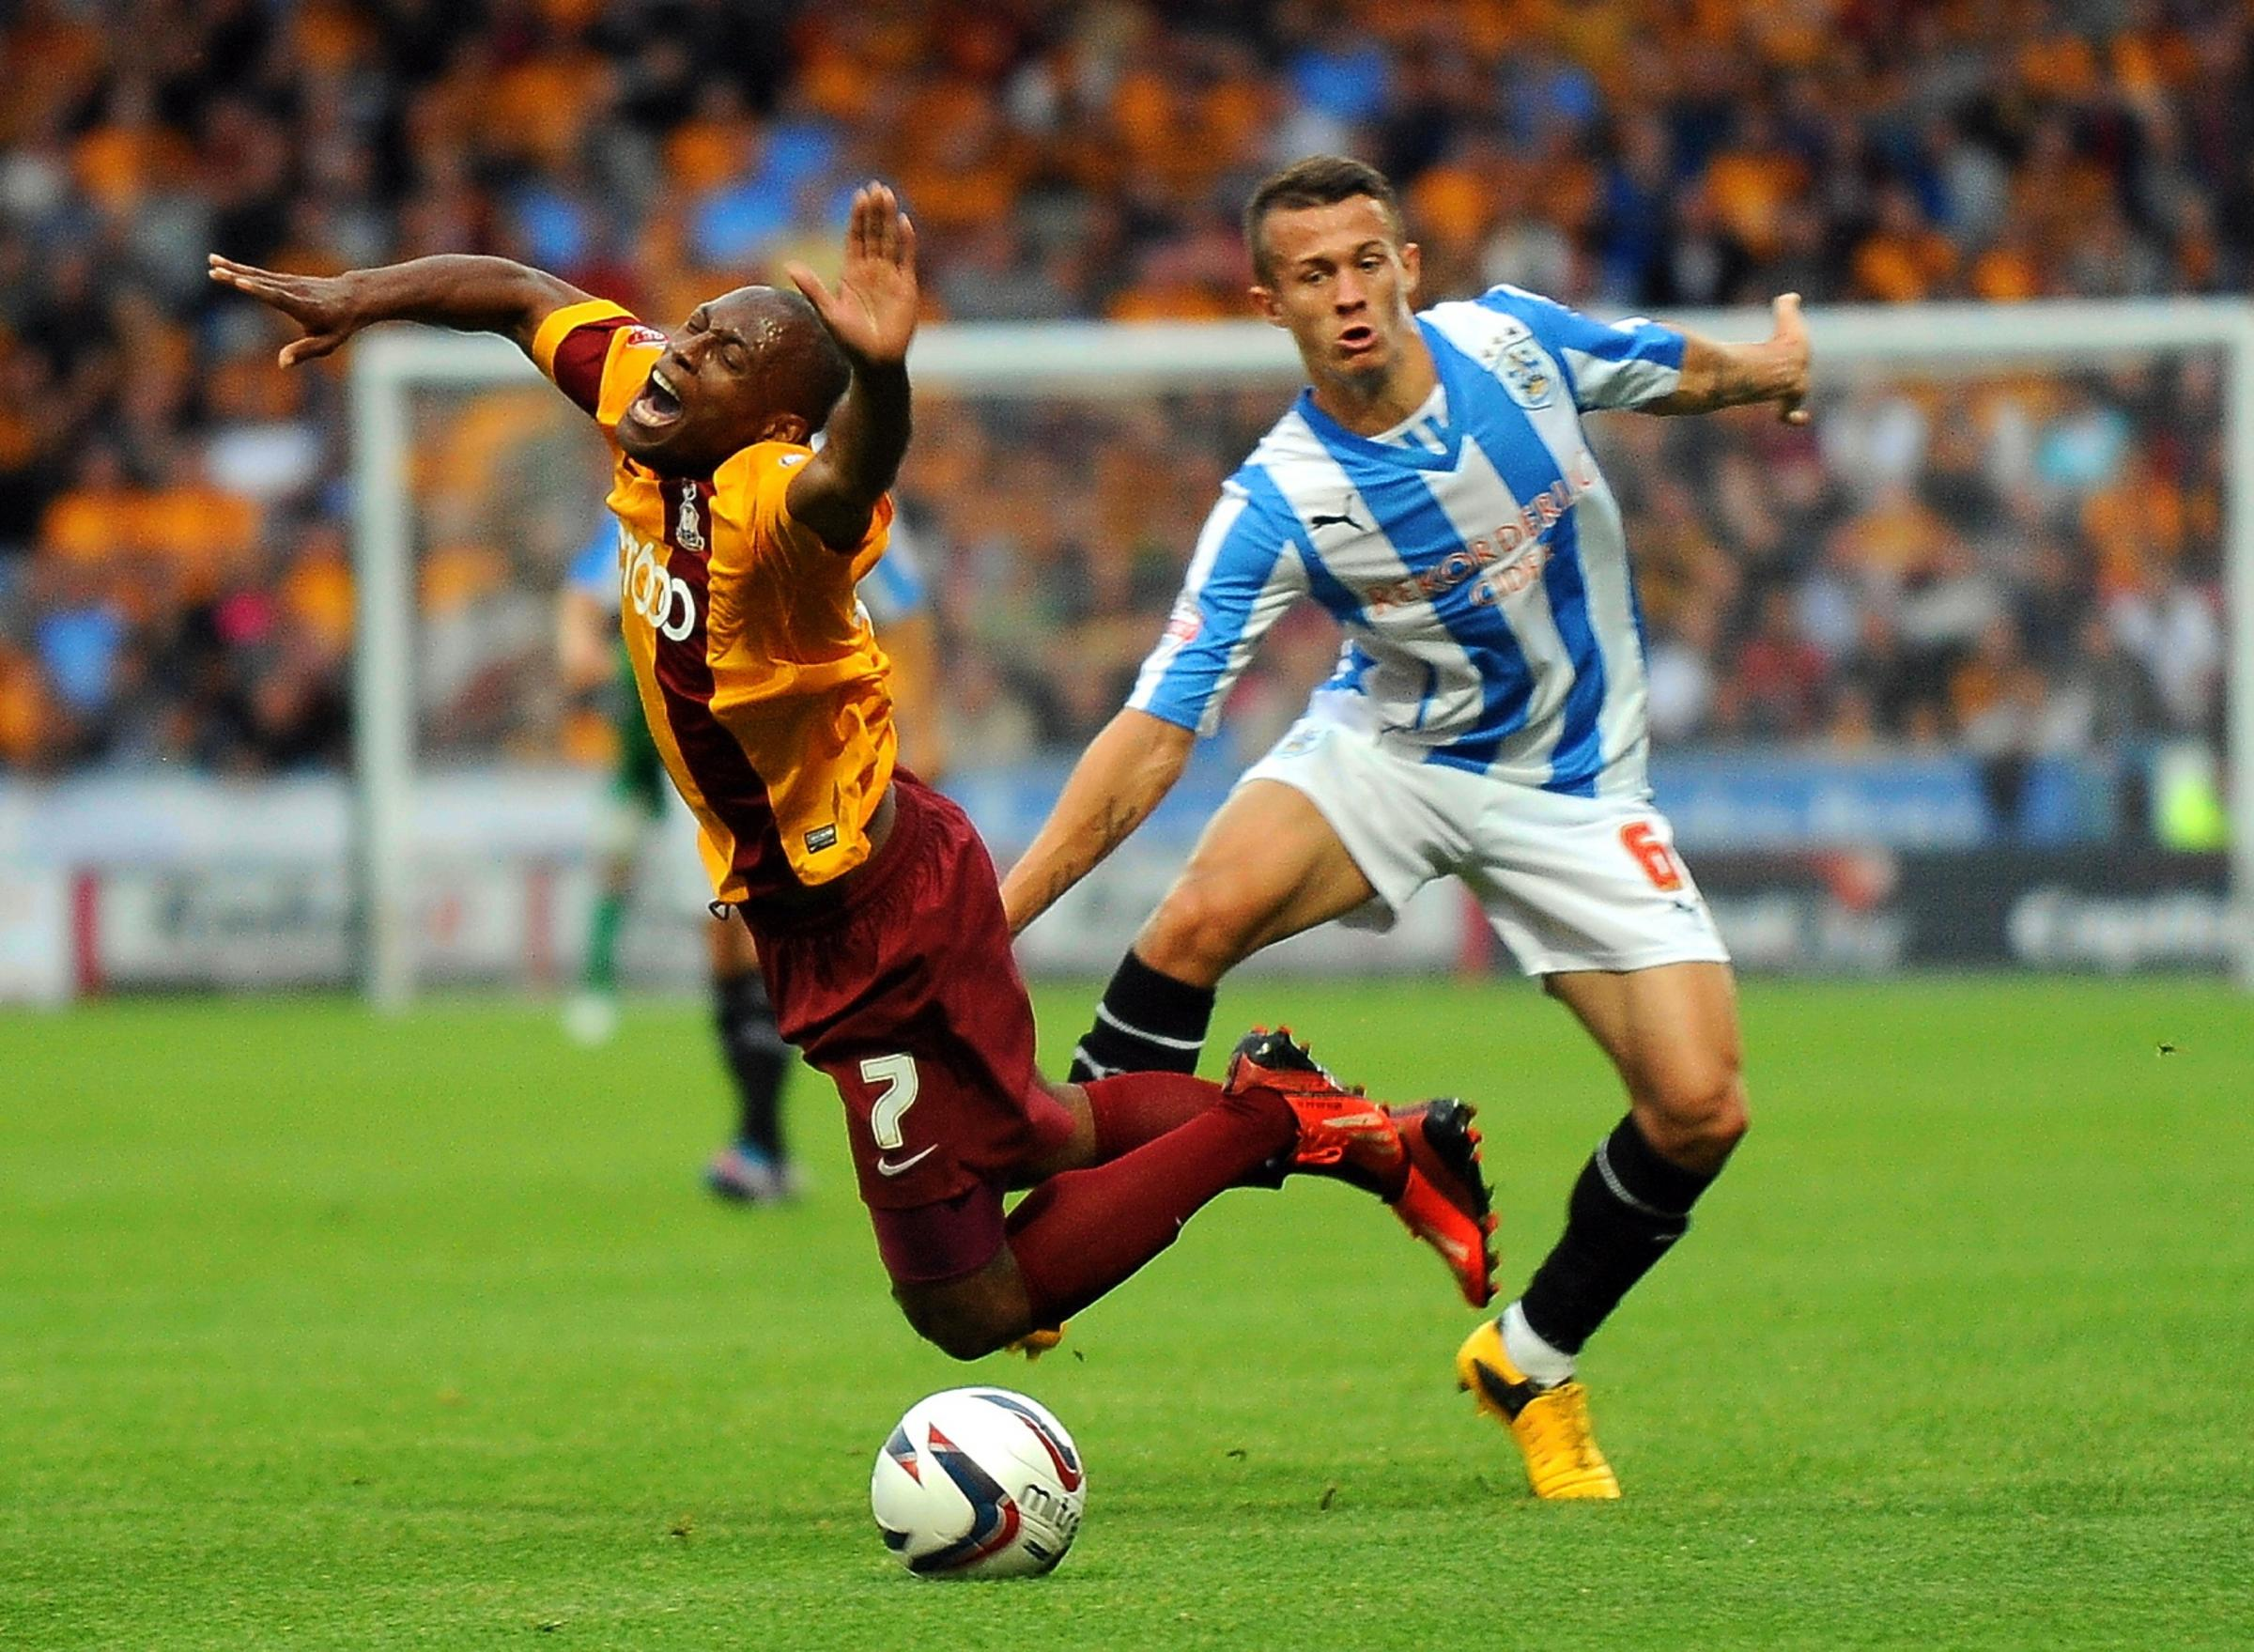 Rhodes urges Bradford City to cash in on cup success